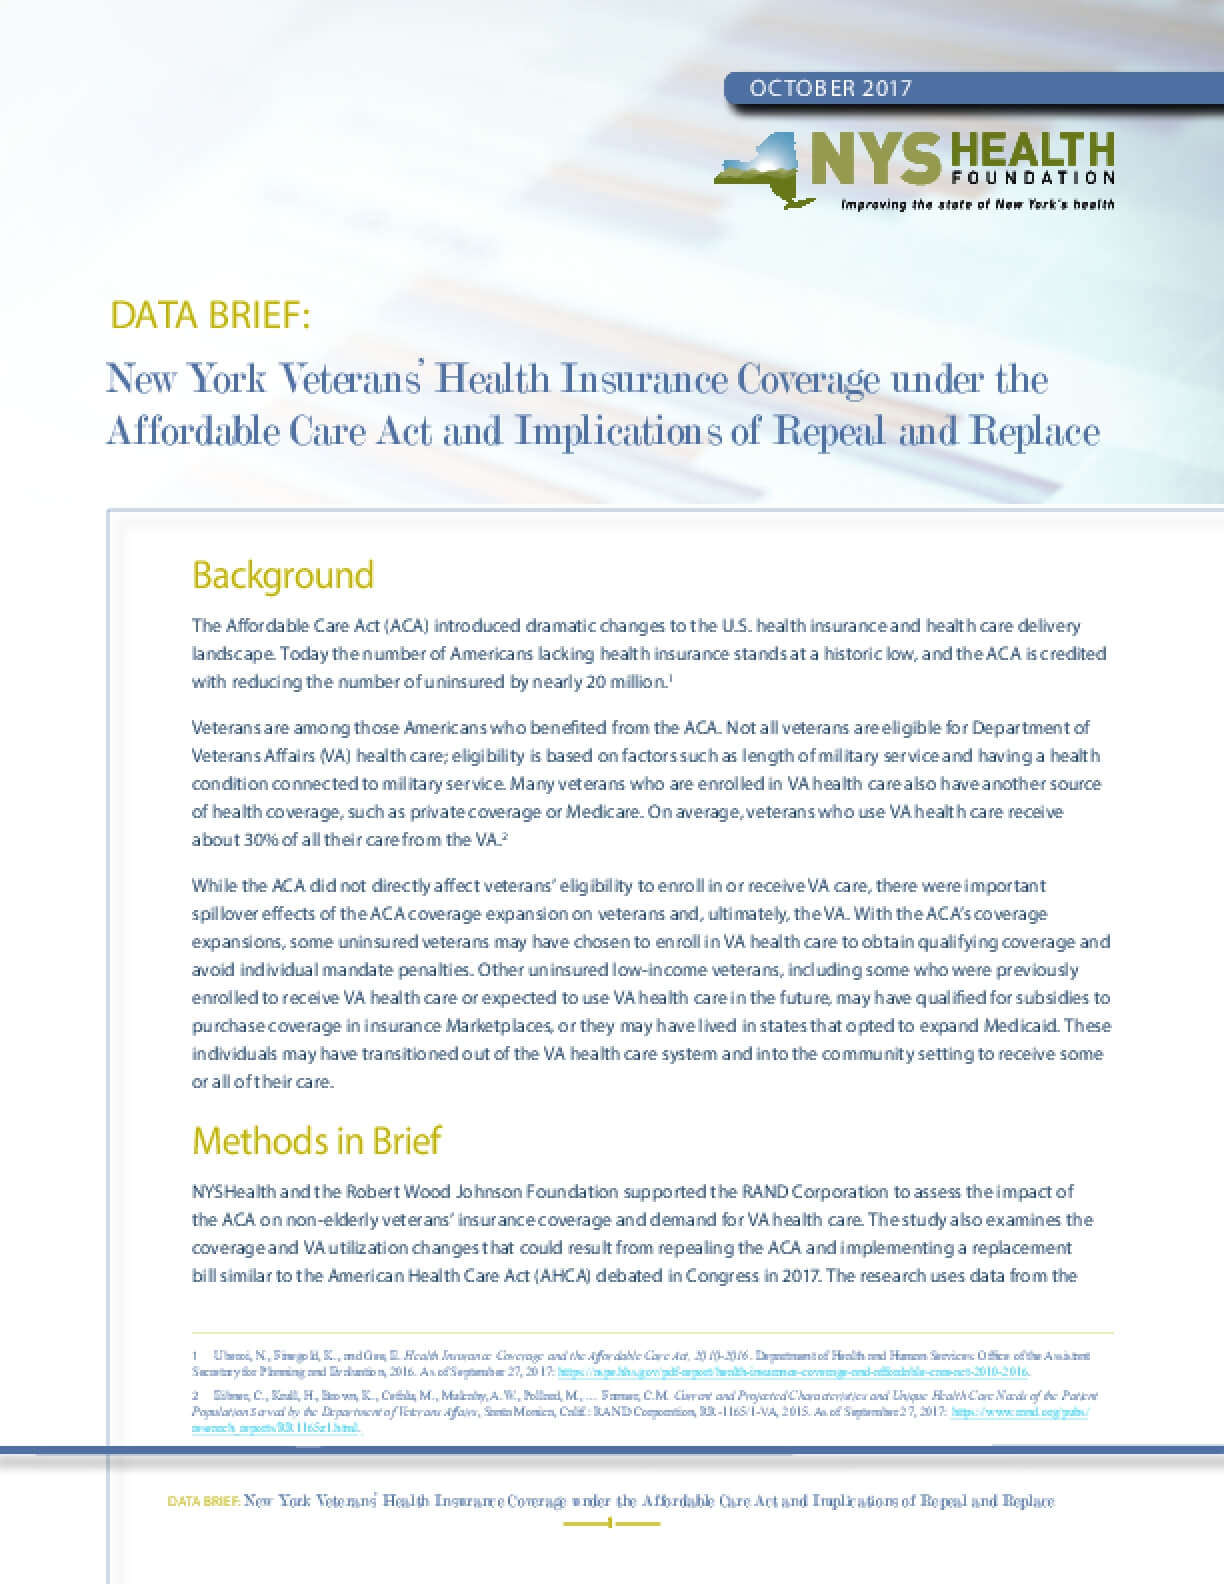 New York Veterans' Health Insurance Coverage under the Affordable Care Act and Implications of Repeal and Replace